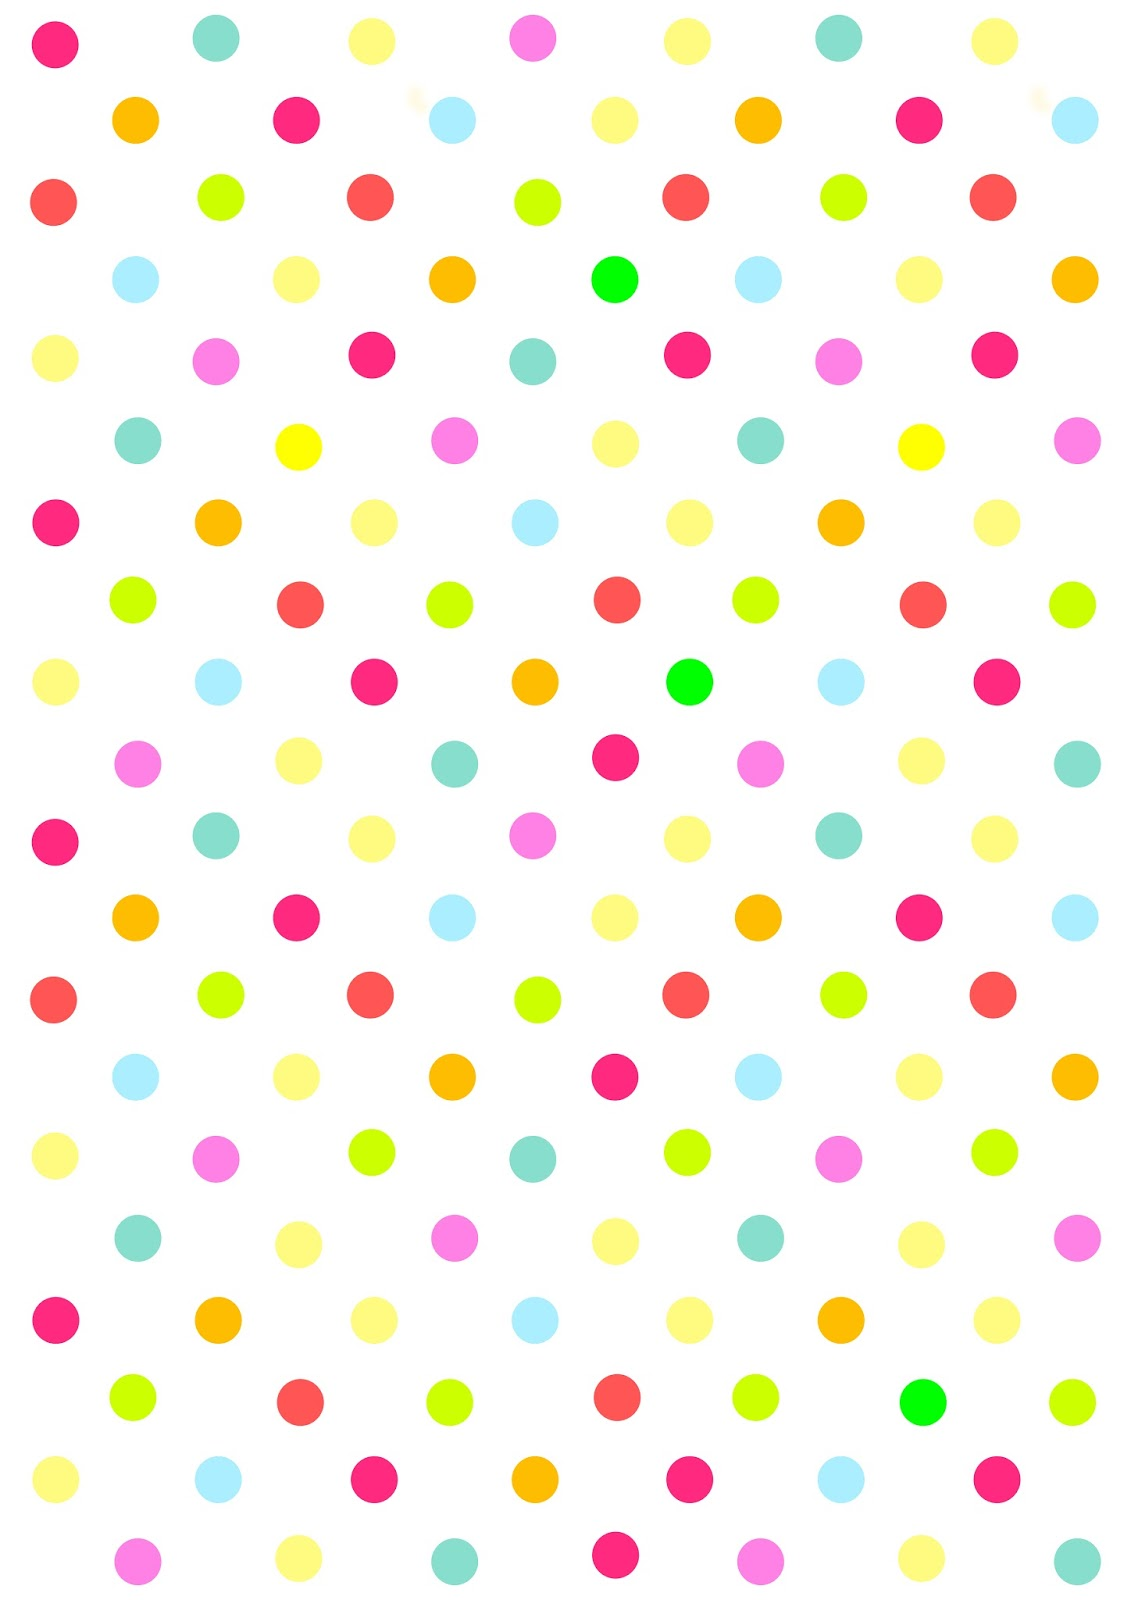 6 Images of Polka Dot Free Printables